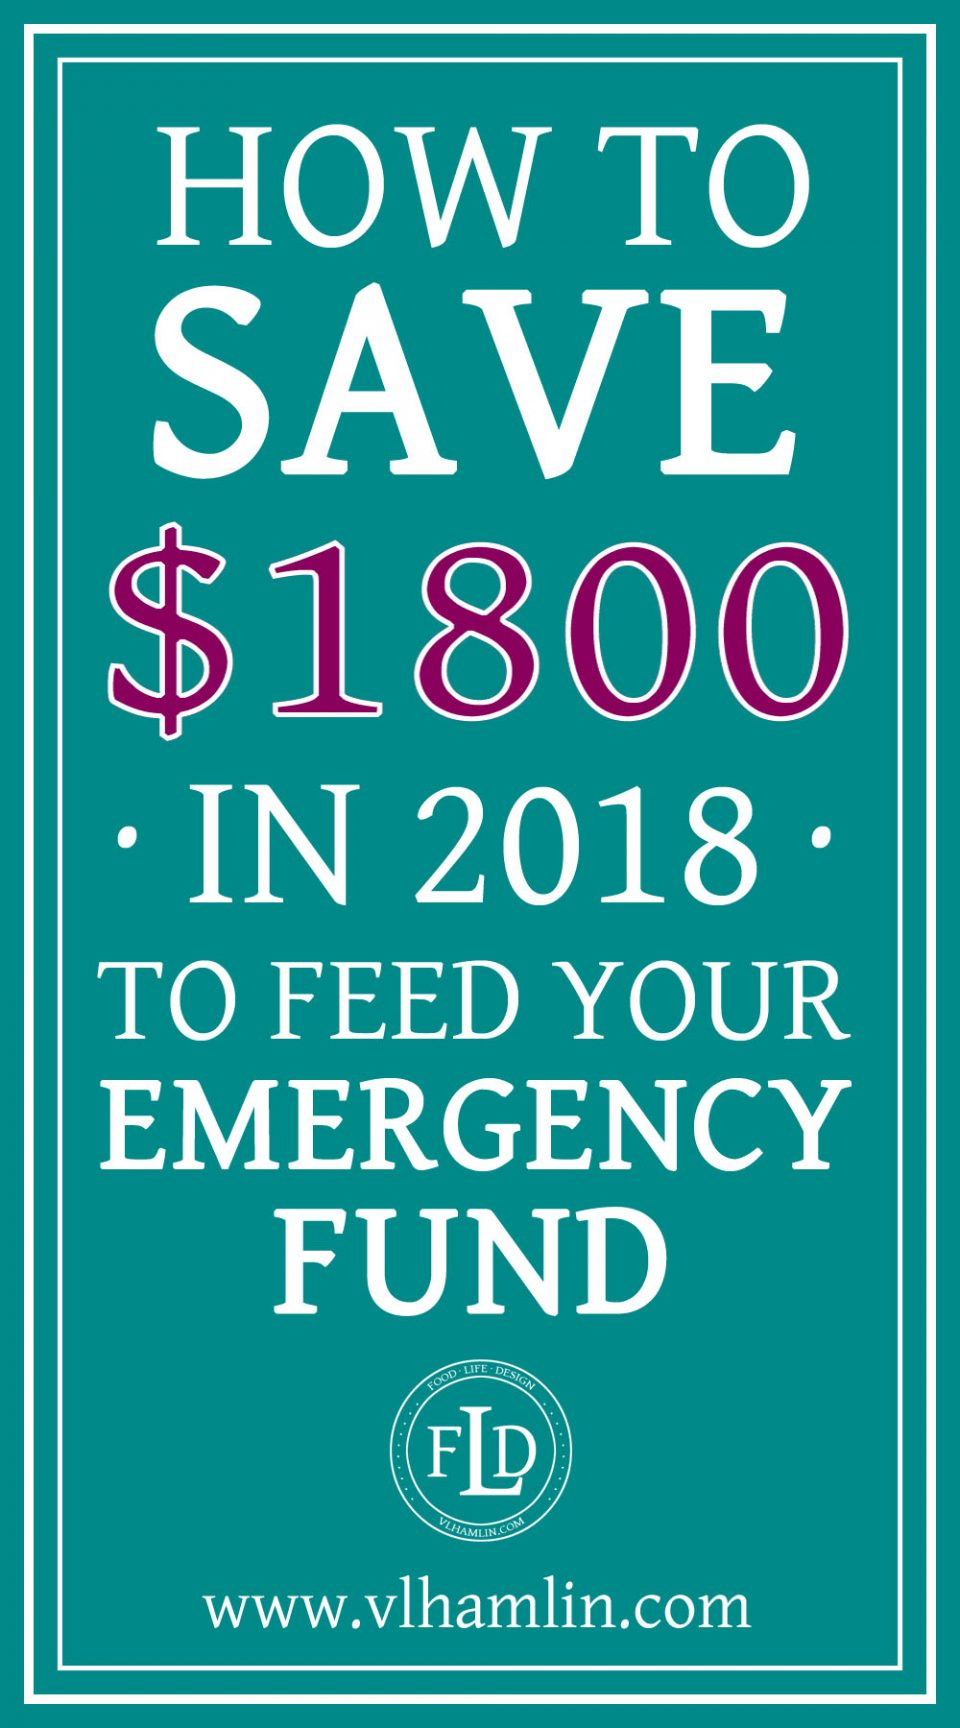 How to Save $1800 in 2018 to Feed Your Emergency Fund